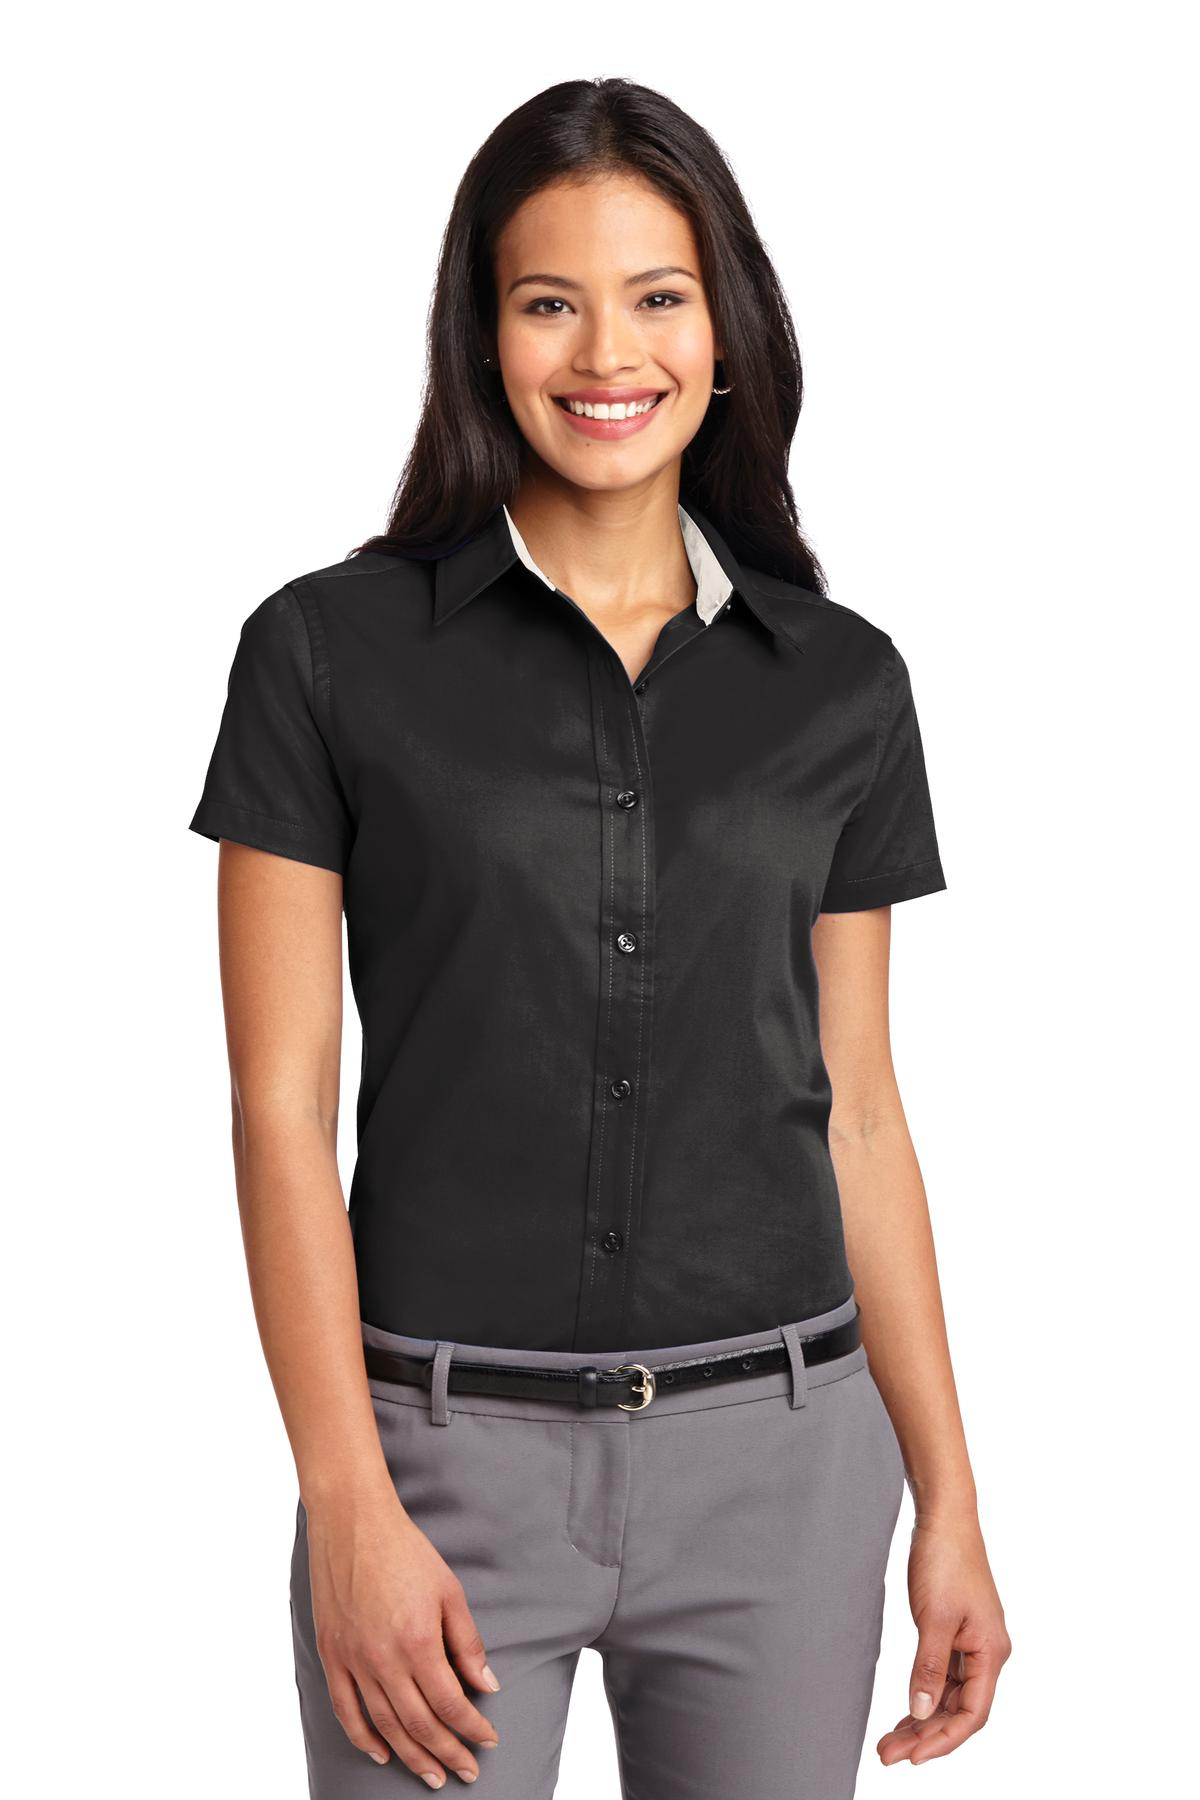 Port Authority ®  Ladies Short Sleeve Easy Care  Shirt.  L508 - Black/ Light Stone